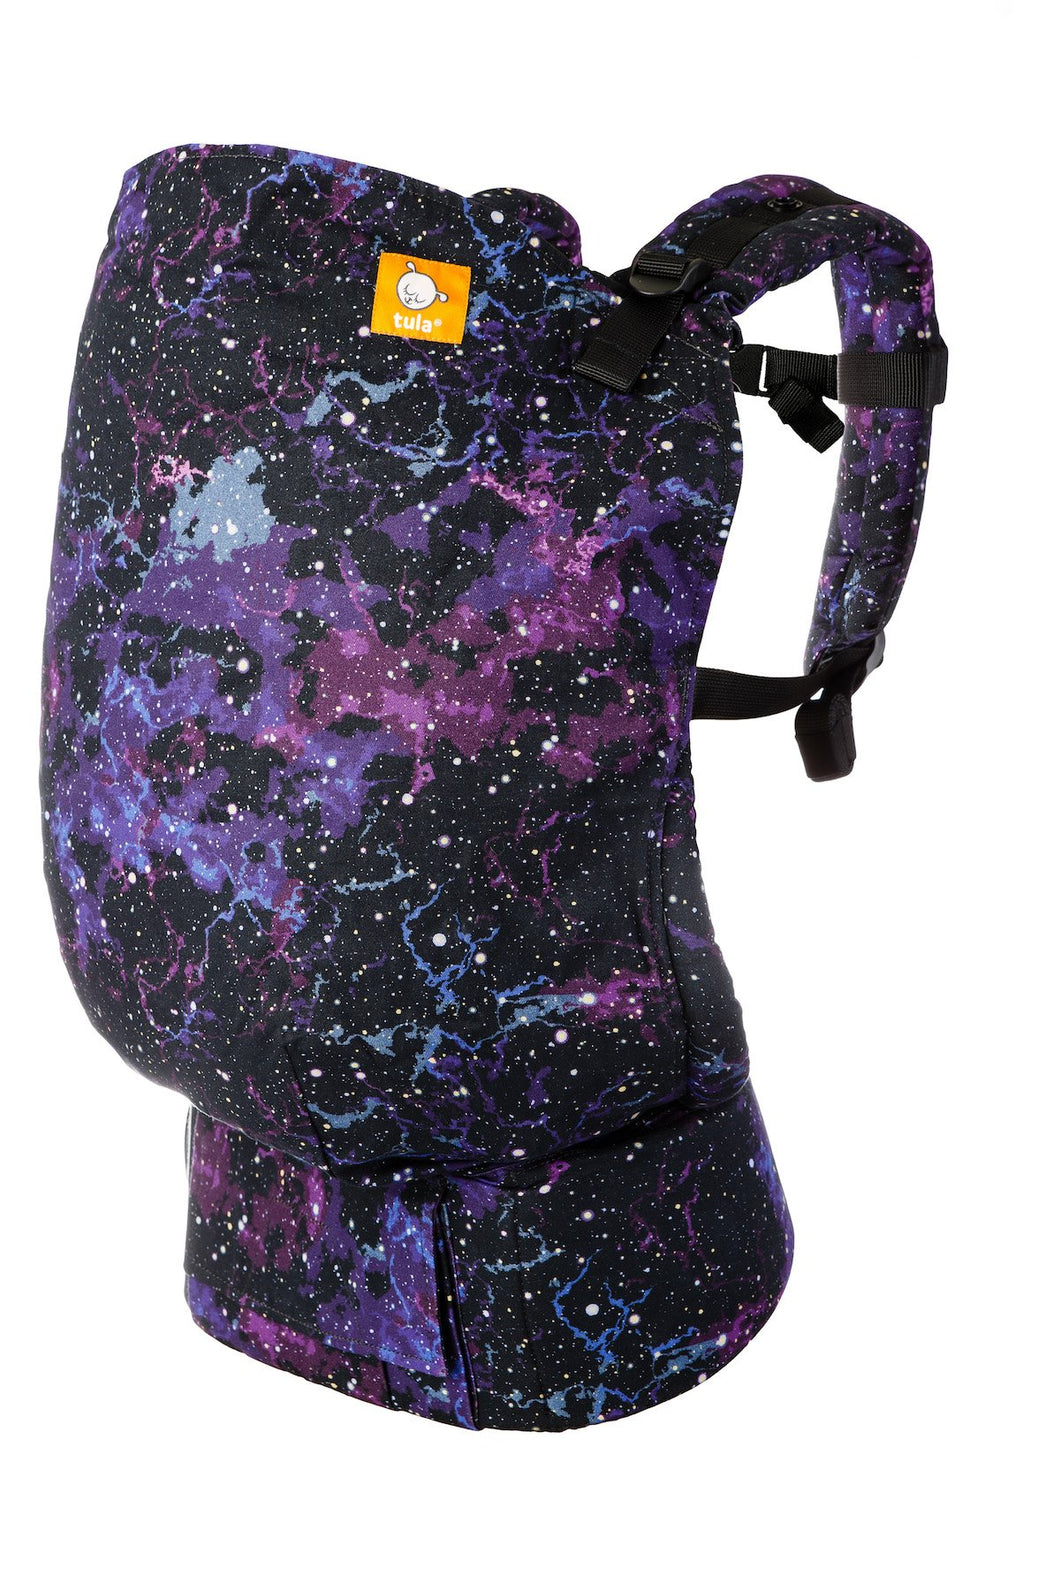 Tula Preschool Carrier Andromeda